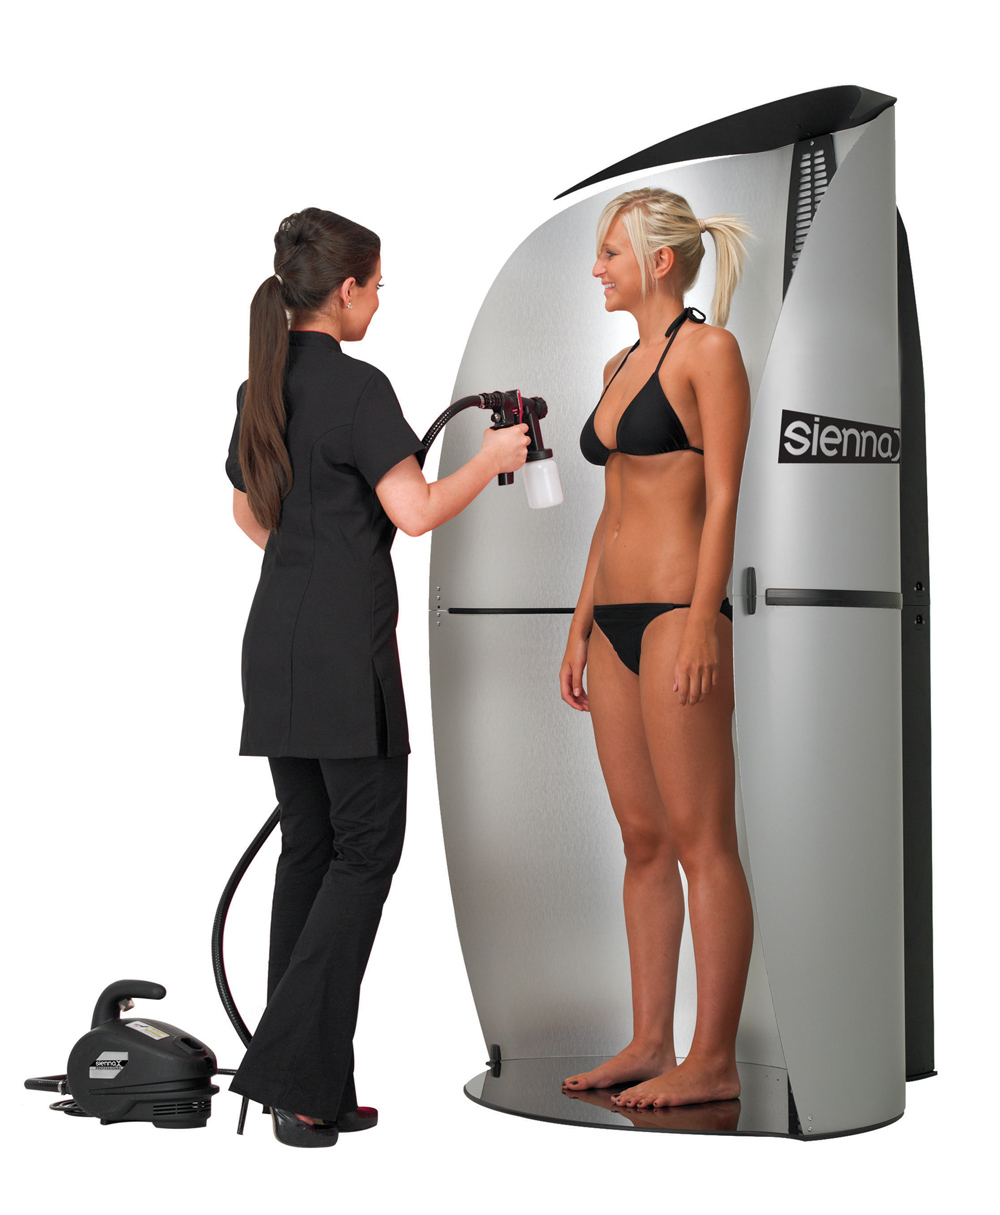 Spray tanning booth